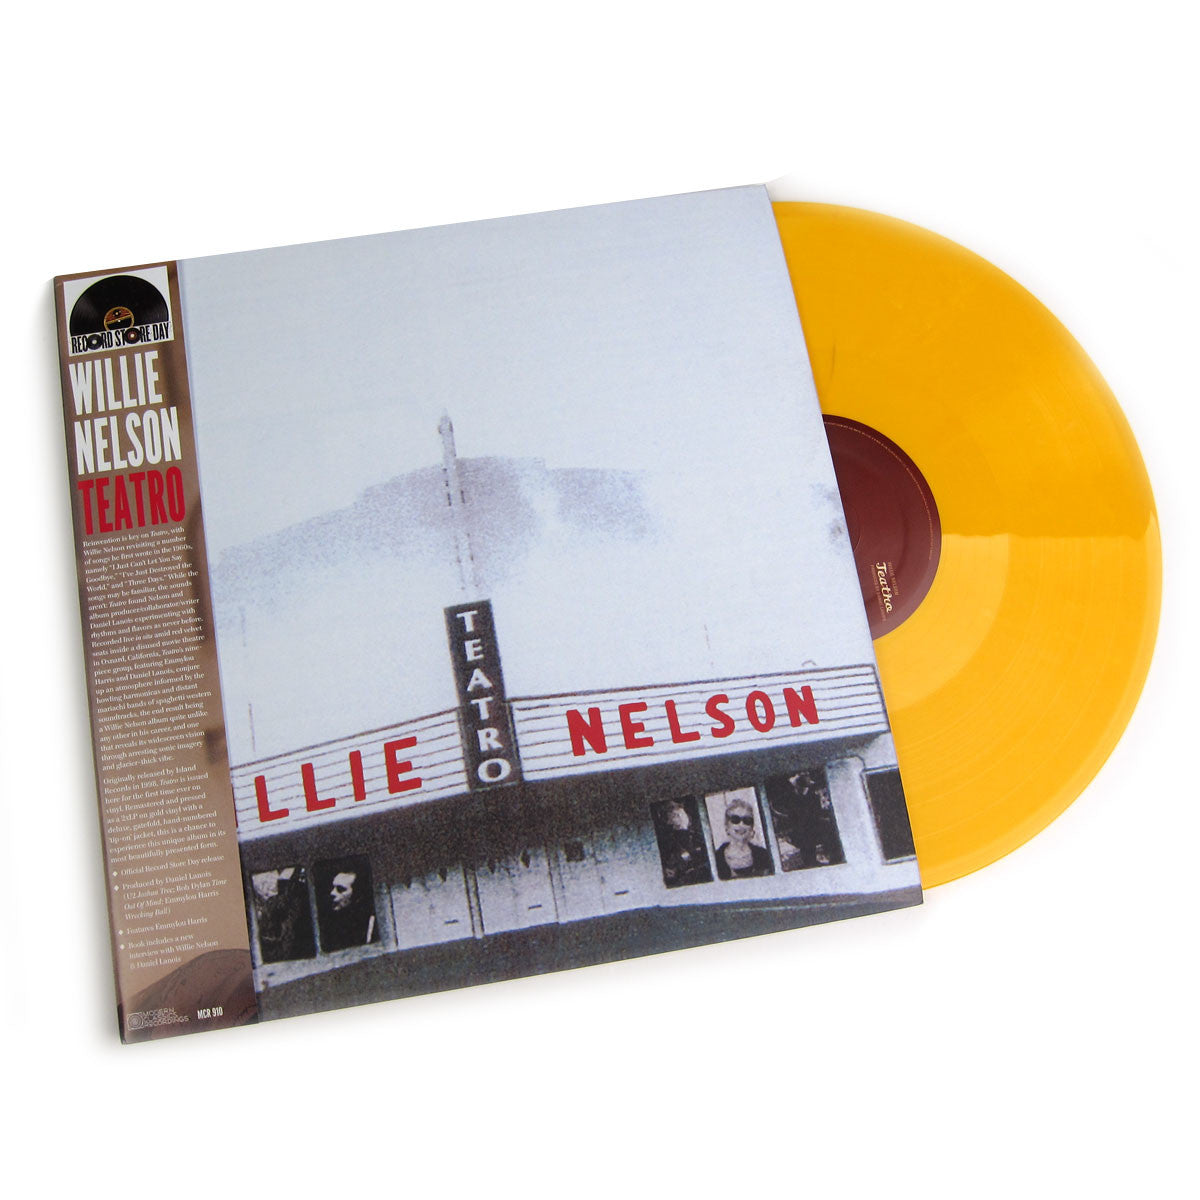 Willie Nelson: Teatro (Gold Vinyl) Vinyl 2LP (Record Store Day)